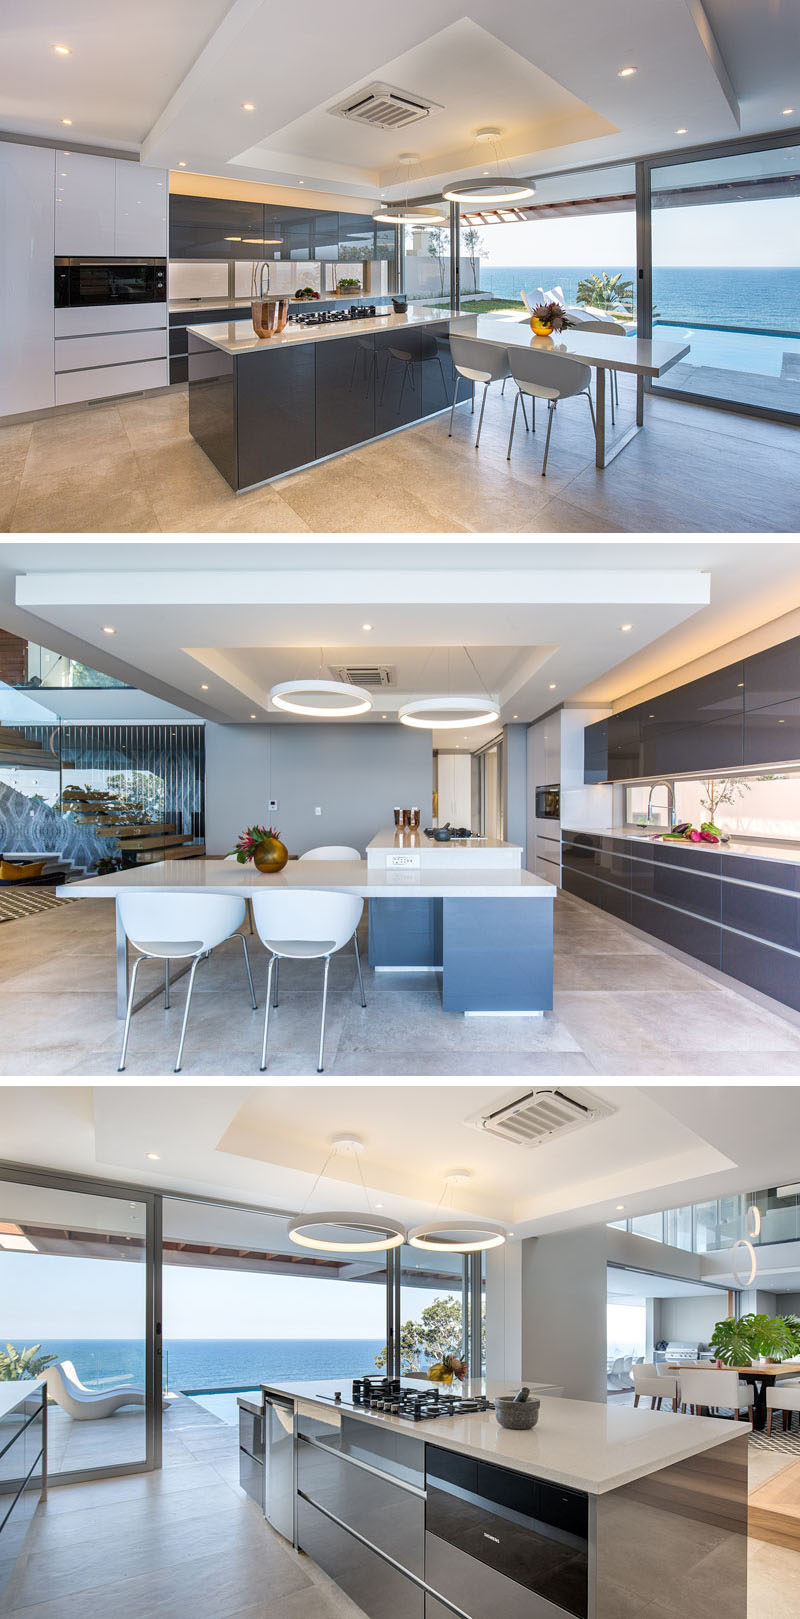 This modern kitchen has a built-in casual dining space, and sleek cabinetry without any hardware makes for a clean, minimal kitchen design.